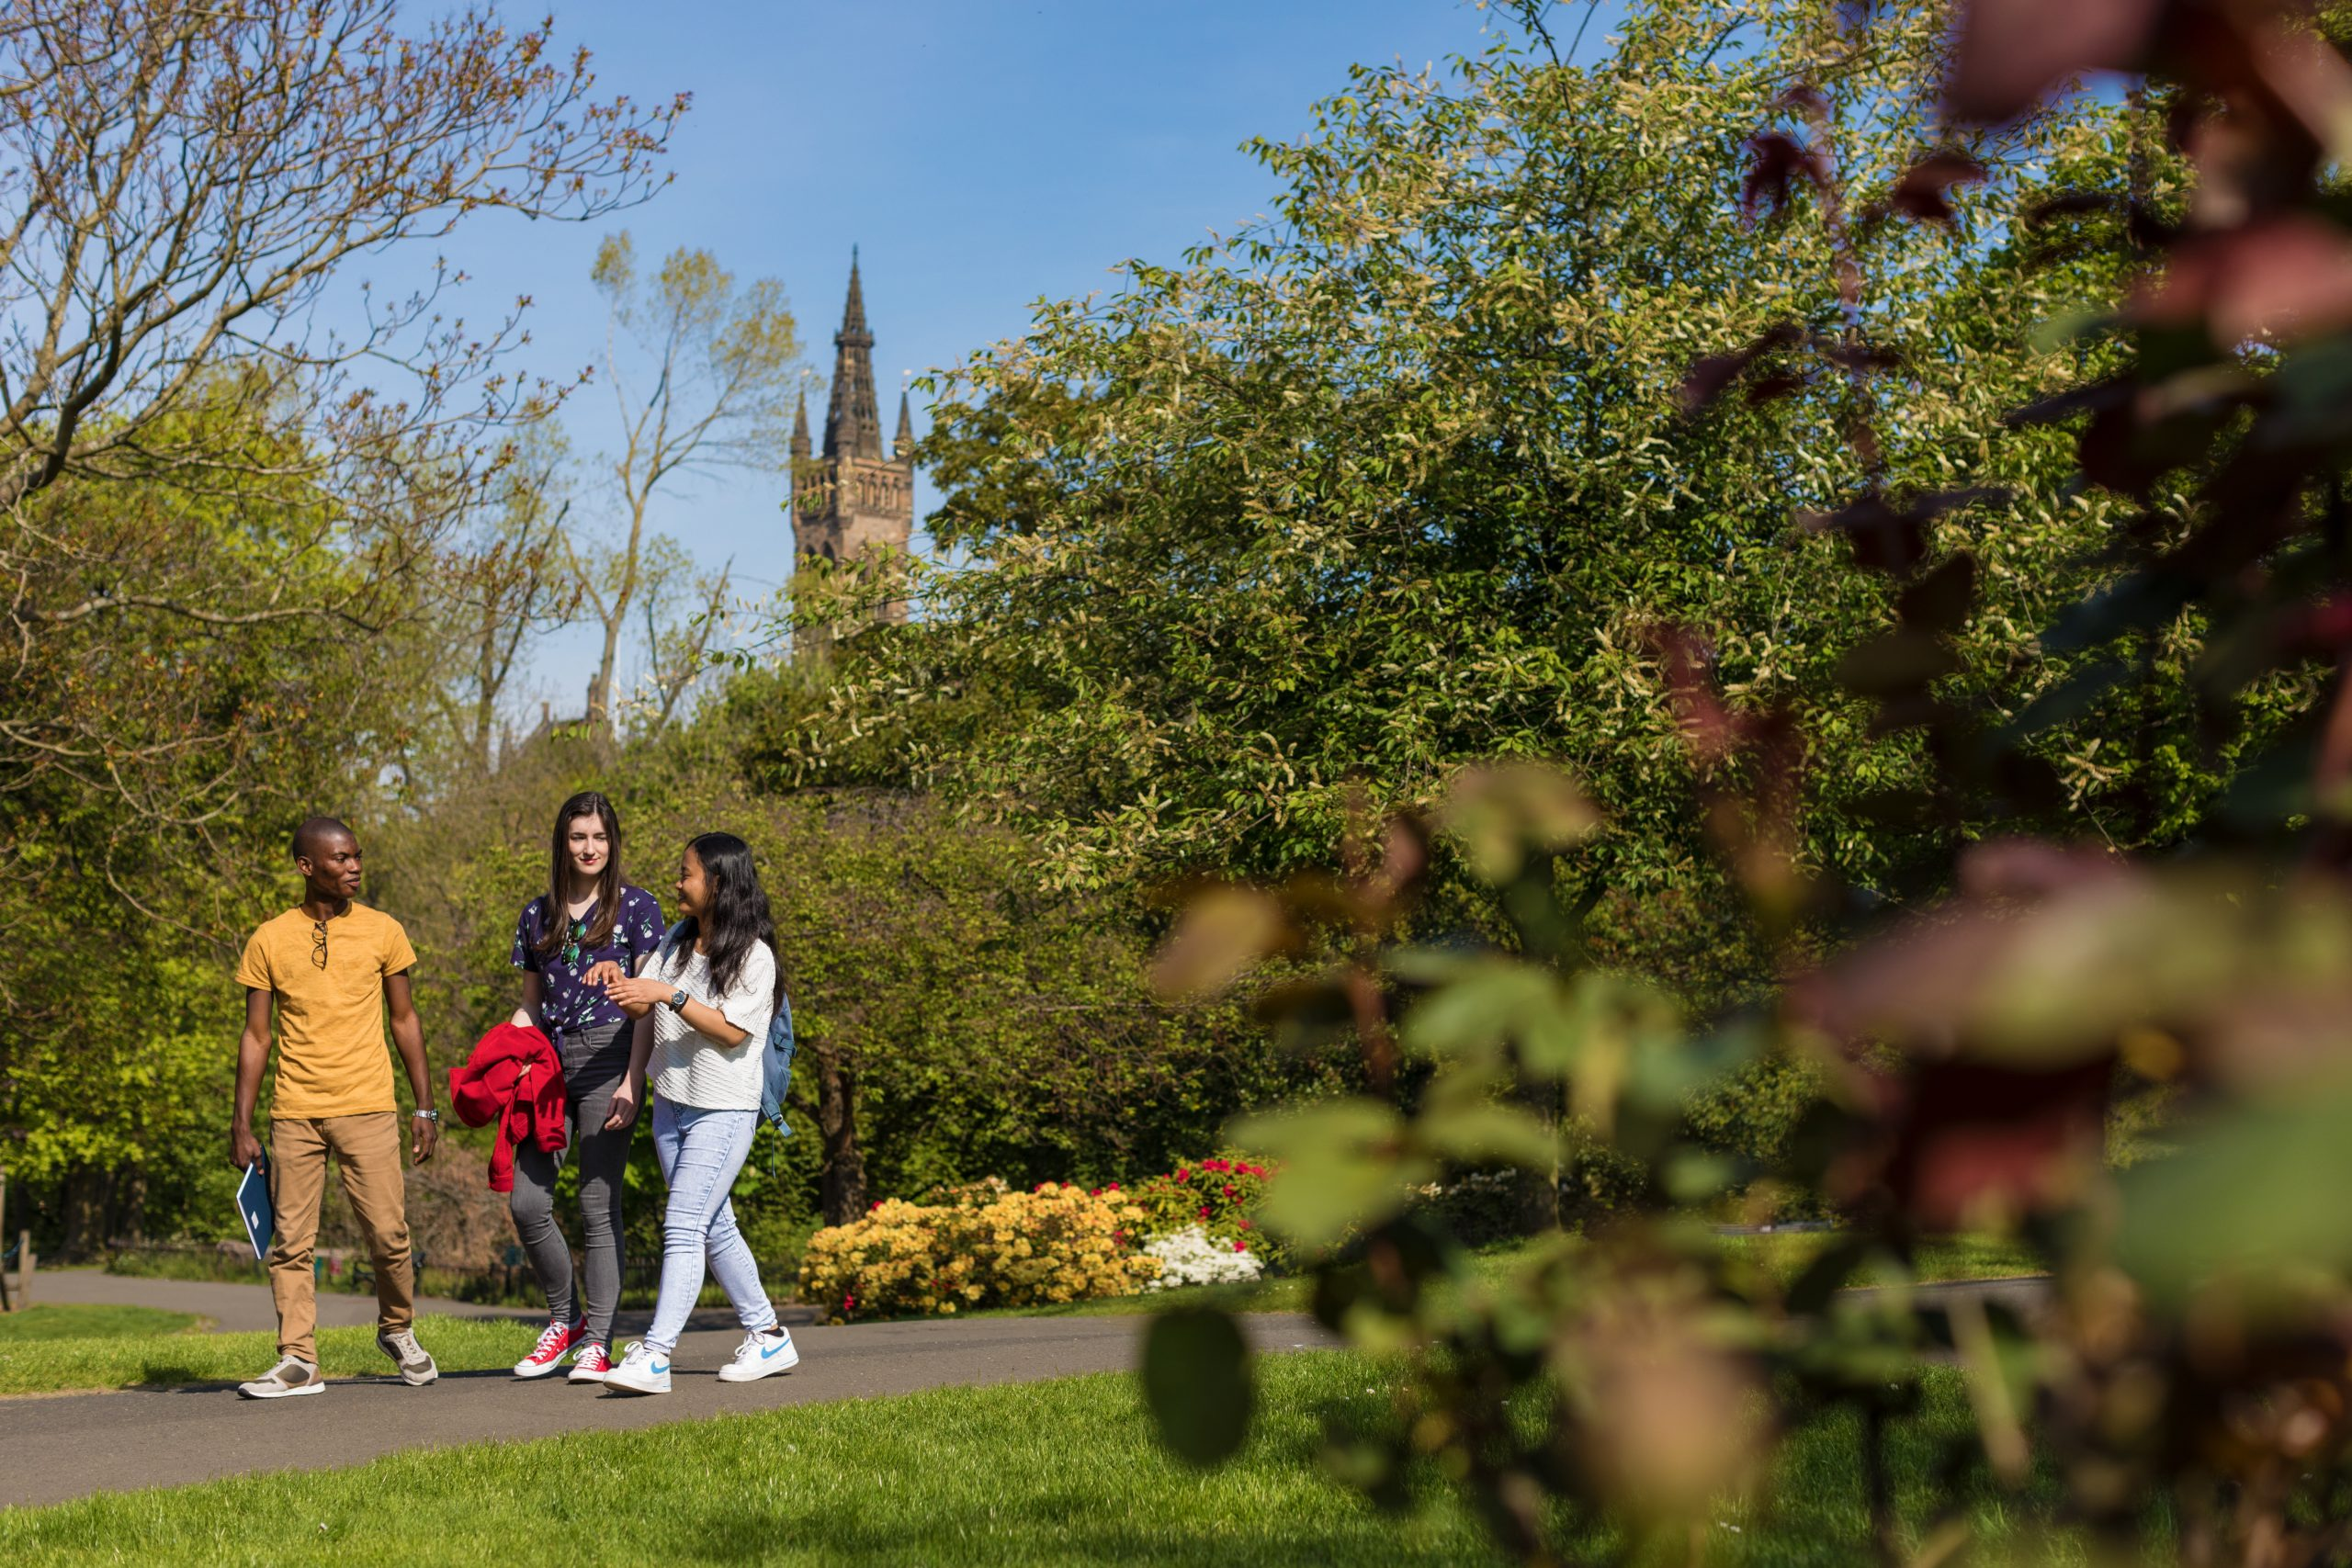 Three postgraduate students walking in Kelvingrove Park on sunny day surrounded by trees, grass and flowers and with the University tower behind them